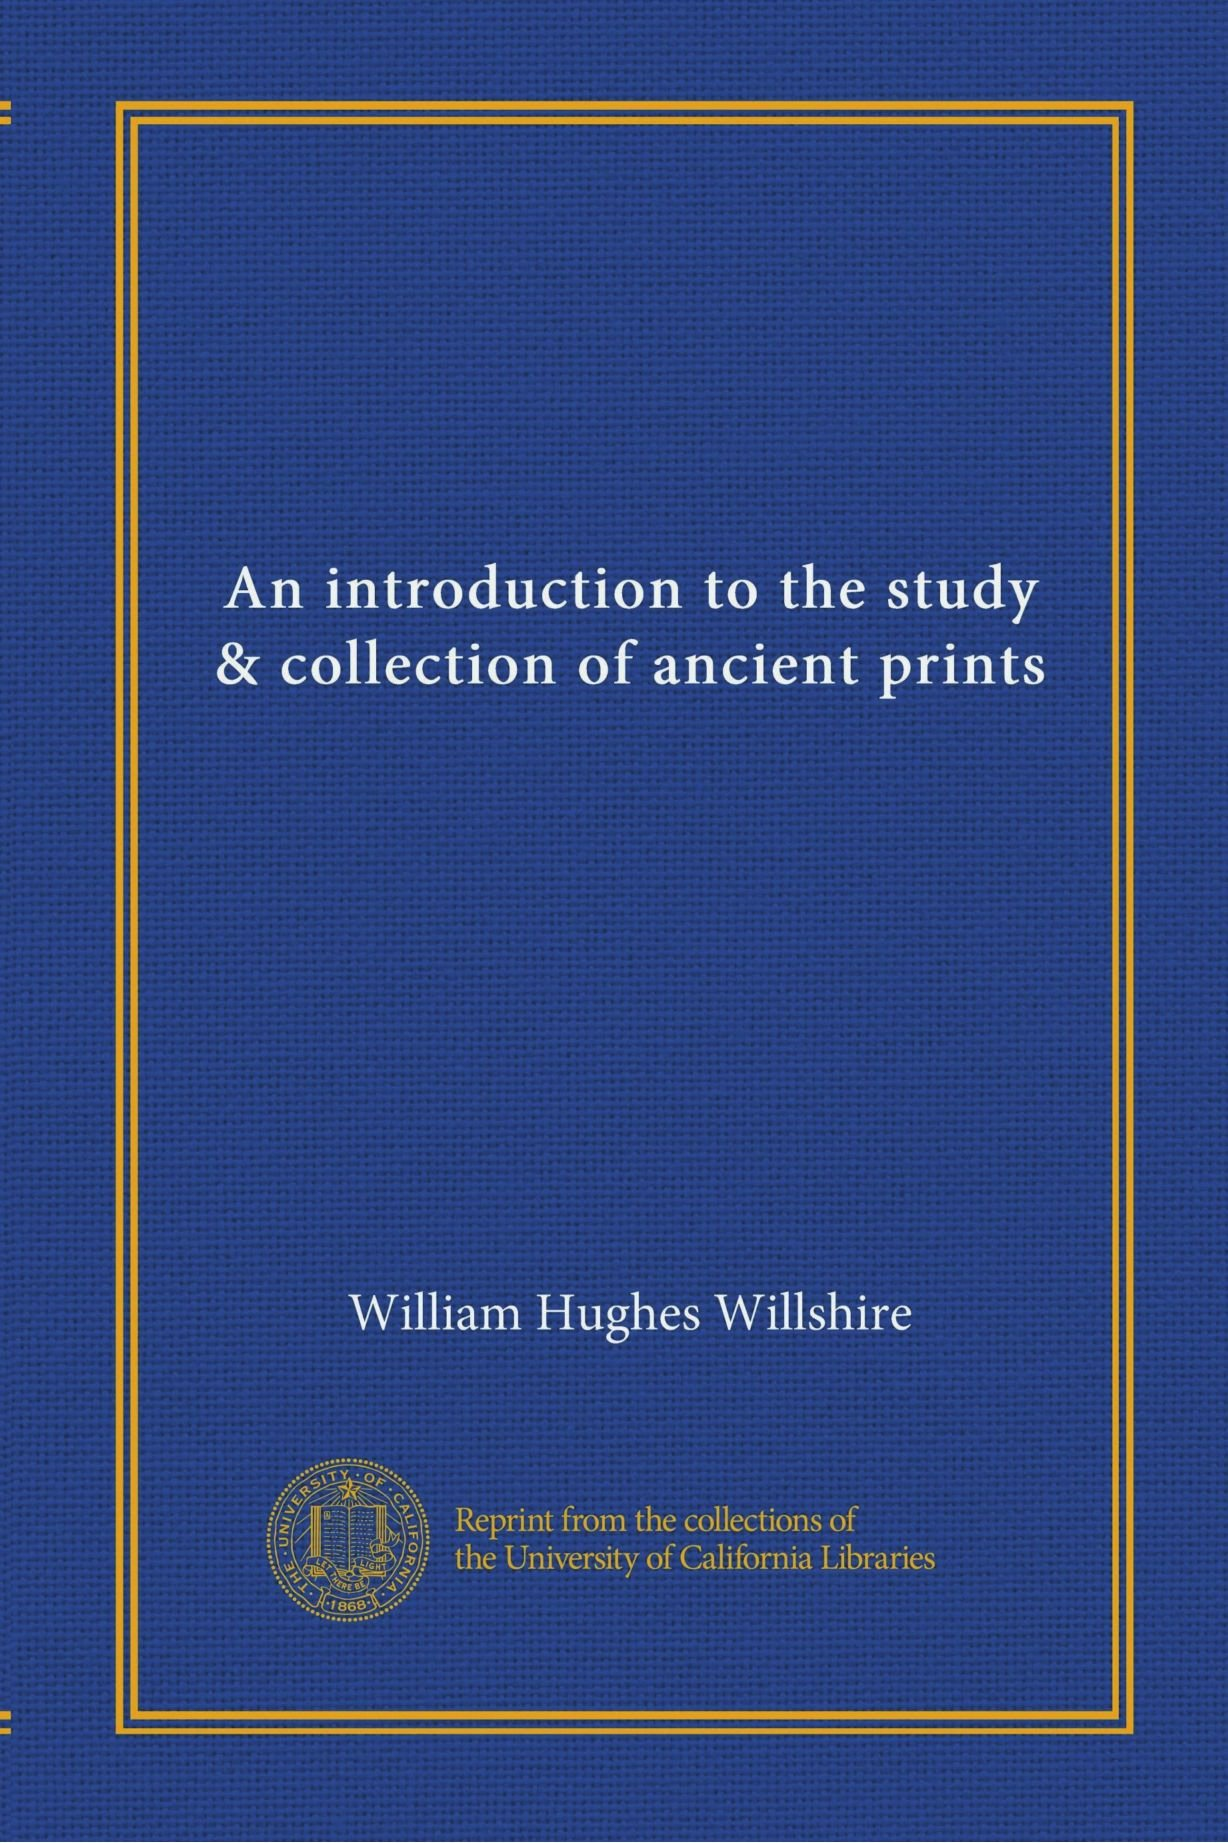 Download An introduction to the study & collection of ancient prints (v.1) PDF